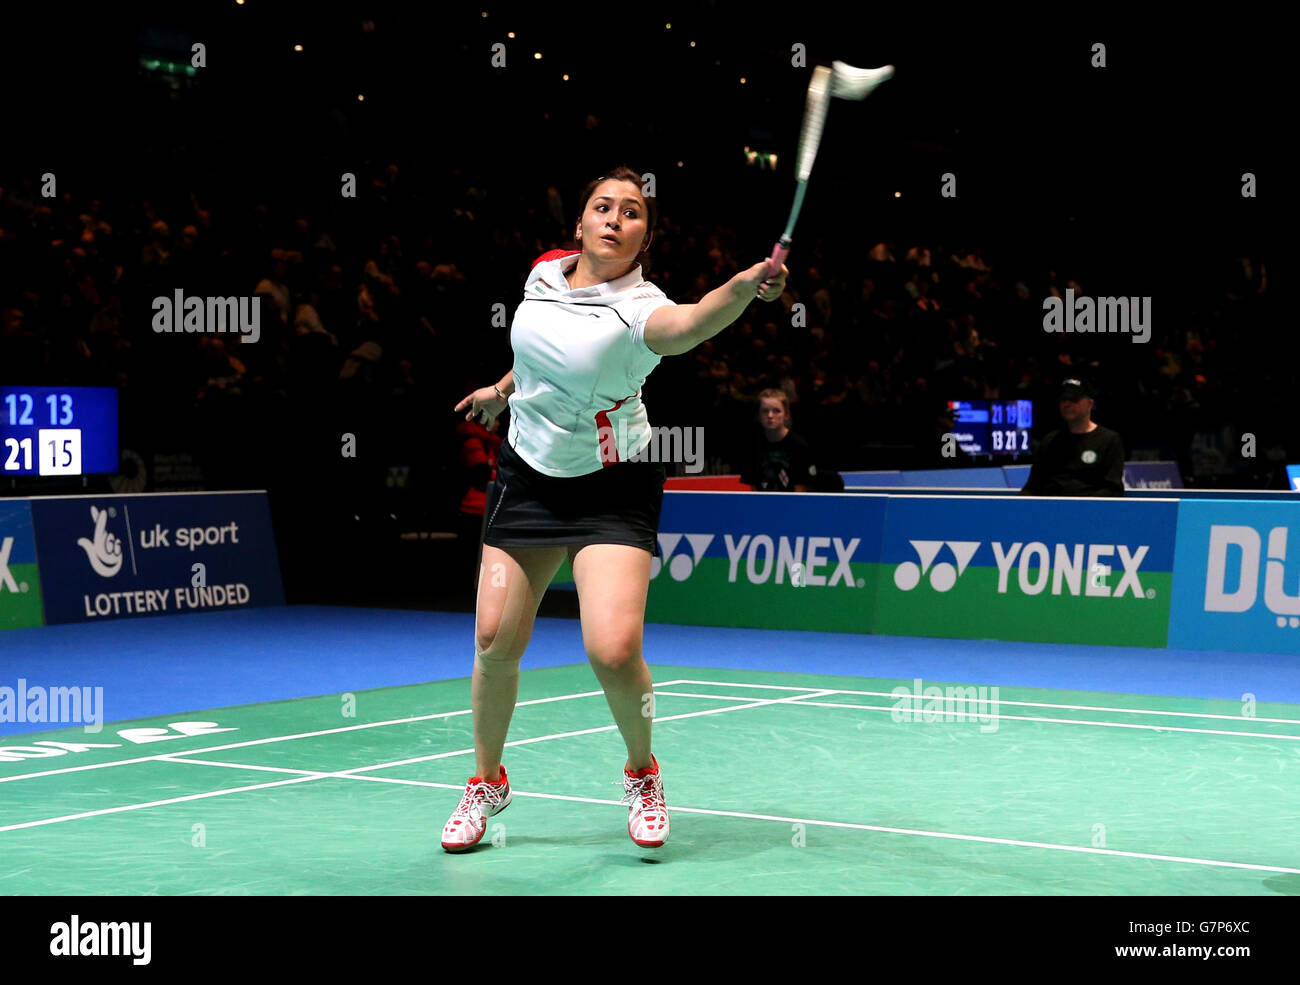 - 2015 Badminton Yonex All England Badminton - Jour 1 - National Indoor Arena Banque D'Images